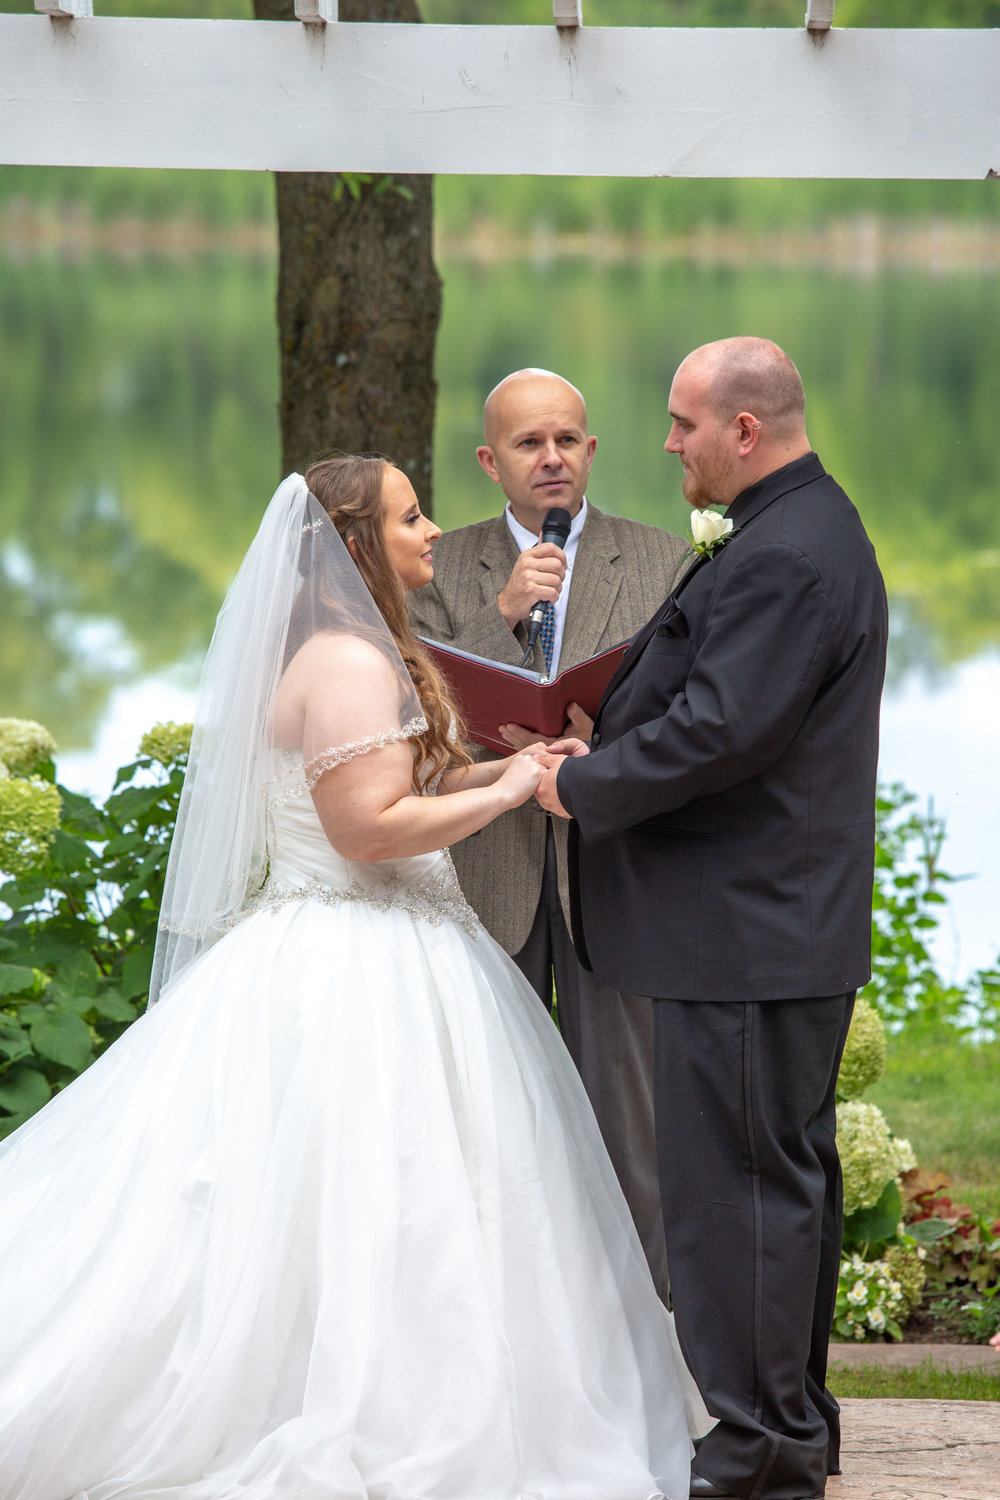 Cindyrella's Garden, Fab Weddings, outdoor Minnesota ceremony, Rosemount wedding, south metro, officiant included